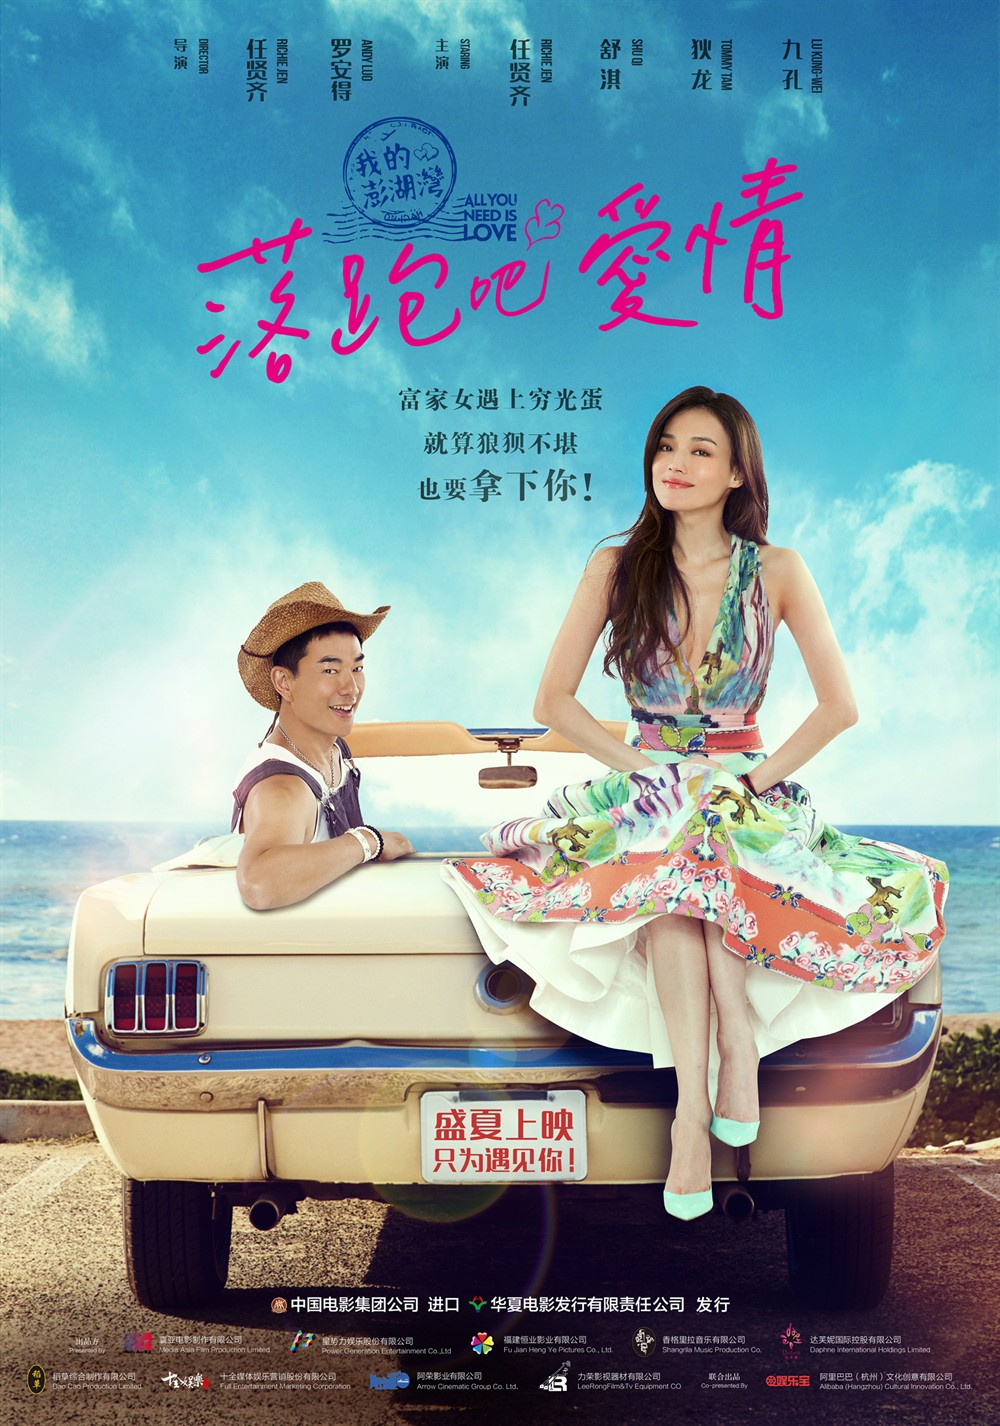 ALL YOU NEED IS LOVE (2015) short review | Asian Film Strike